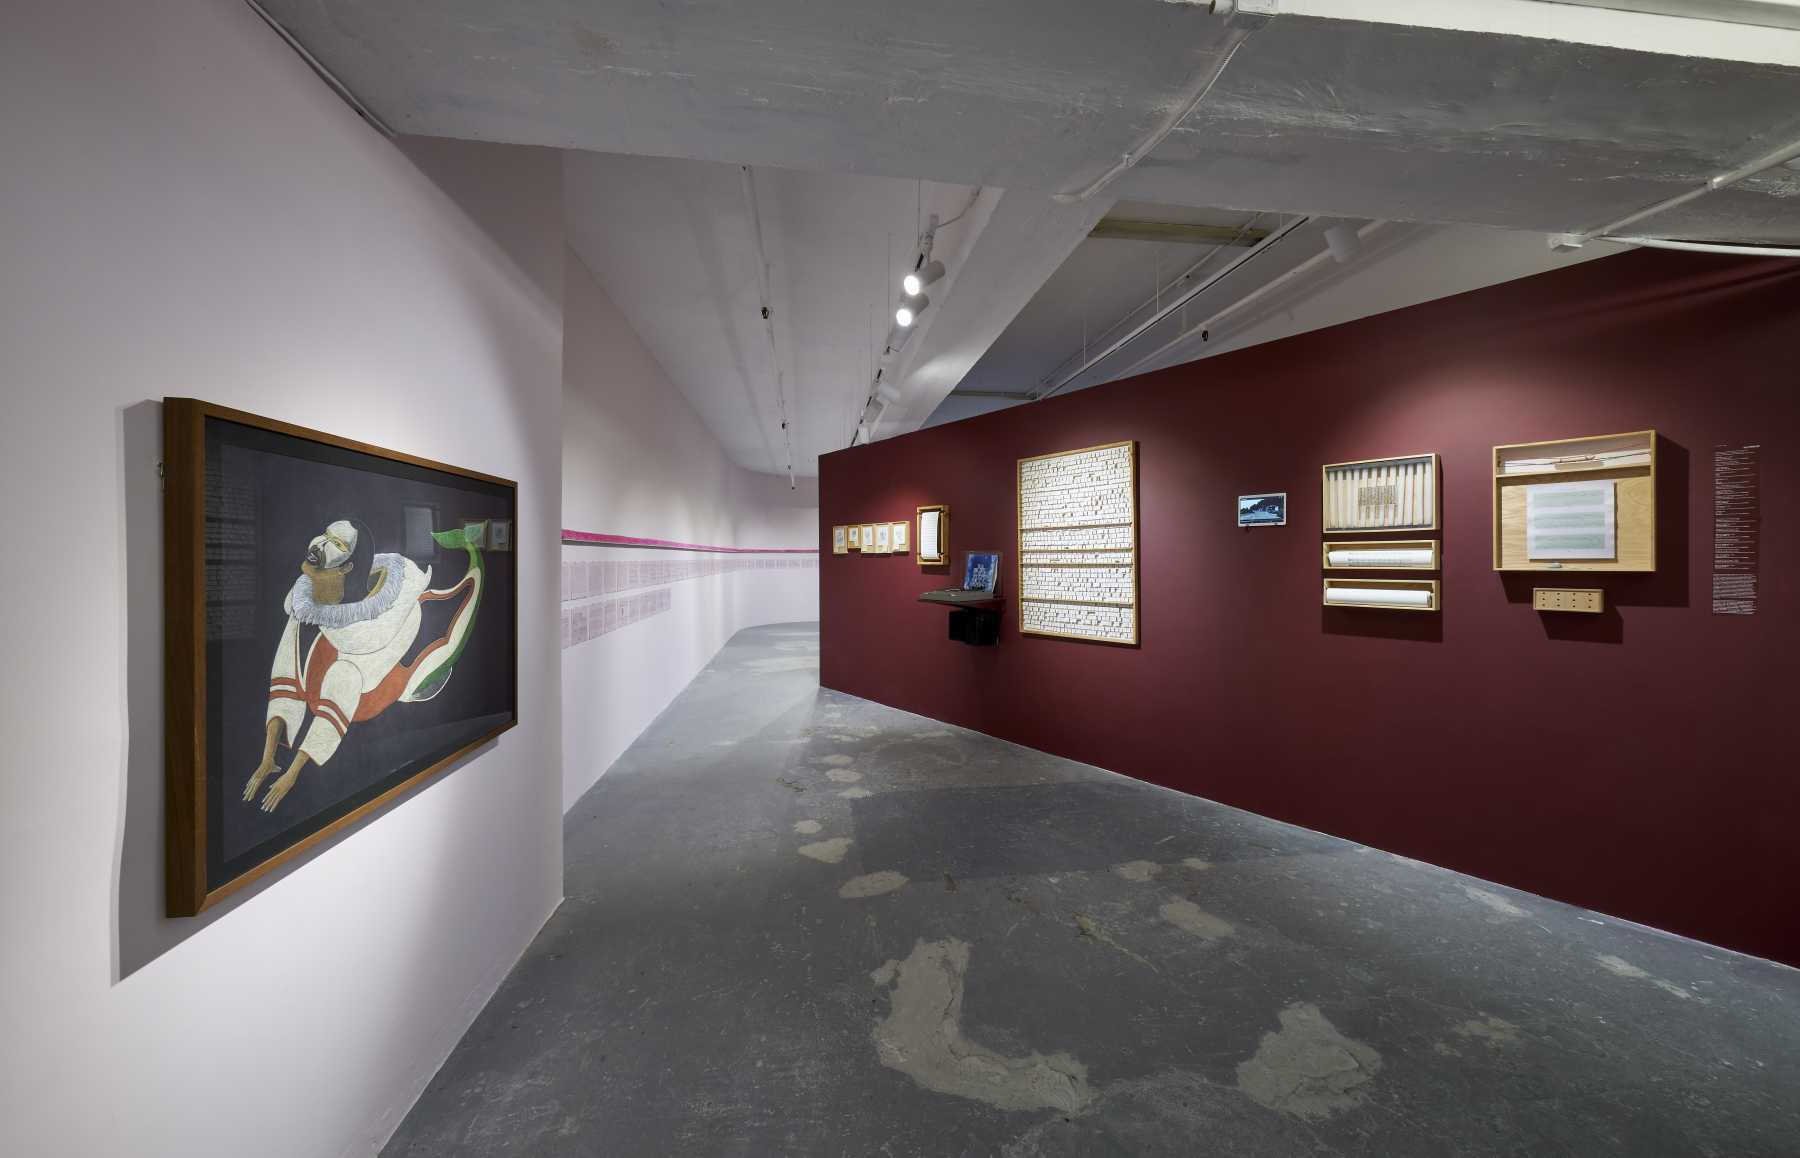 D Art Exhibition Hong Kong : Art basel opening day sales reflect a hesitant market blik